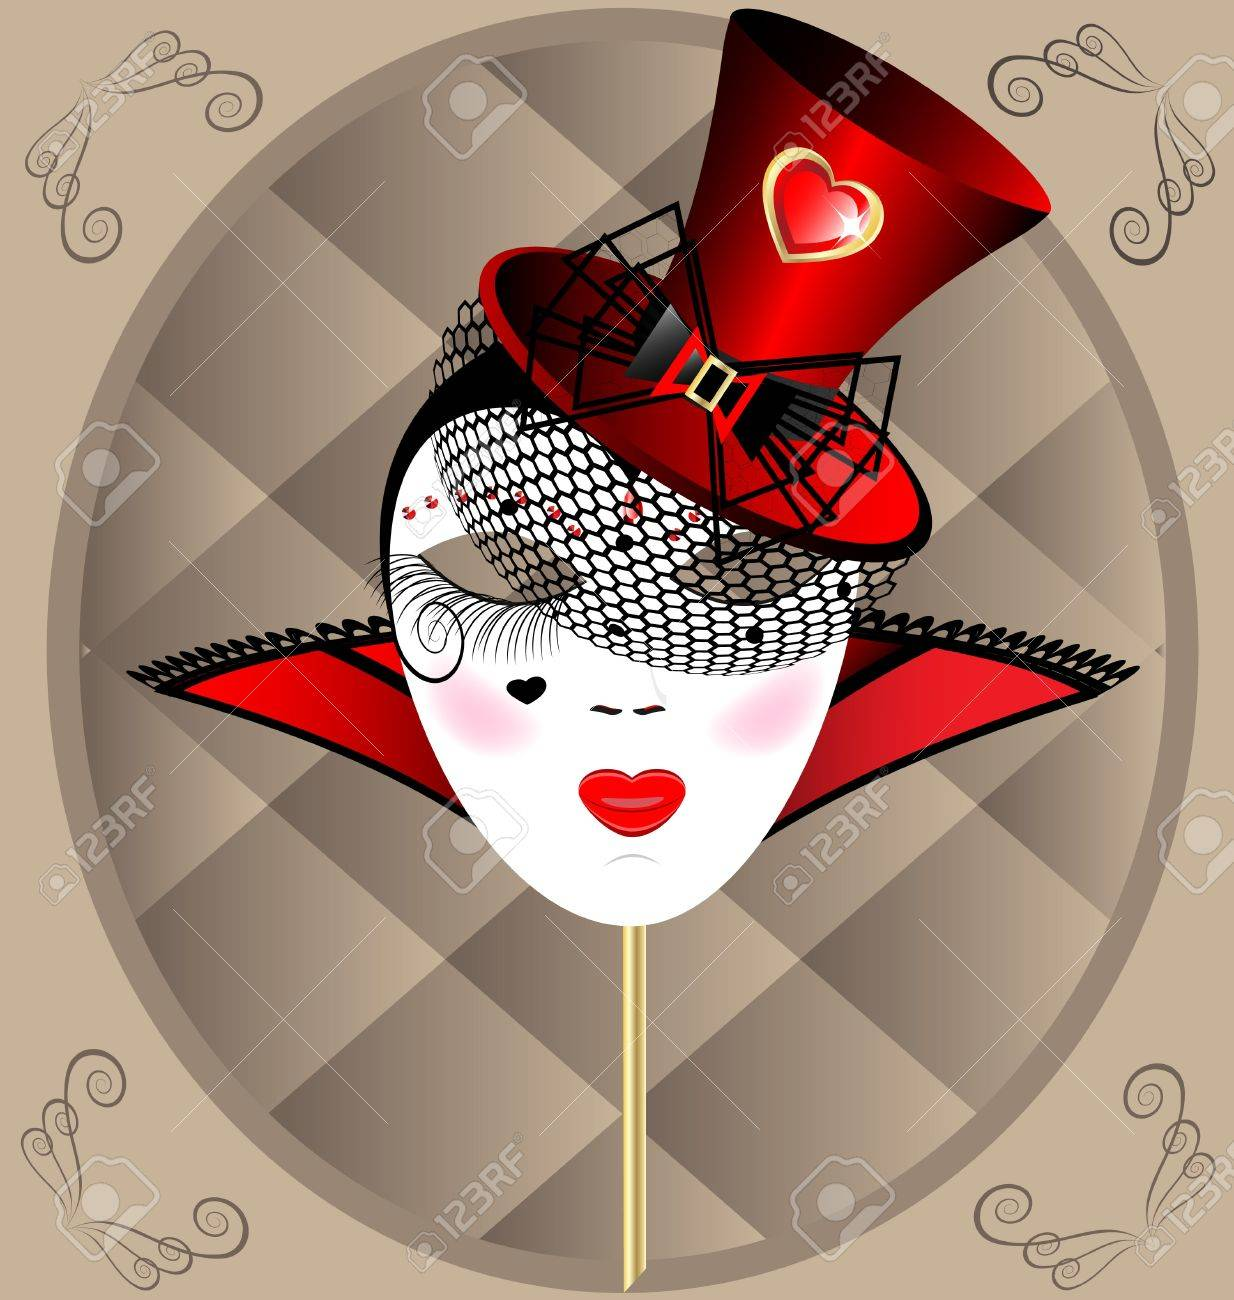 against the background of an abstract pattern carnival masks extravagant lady in a red hat with veil Stock Vector - 9301509